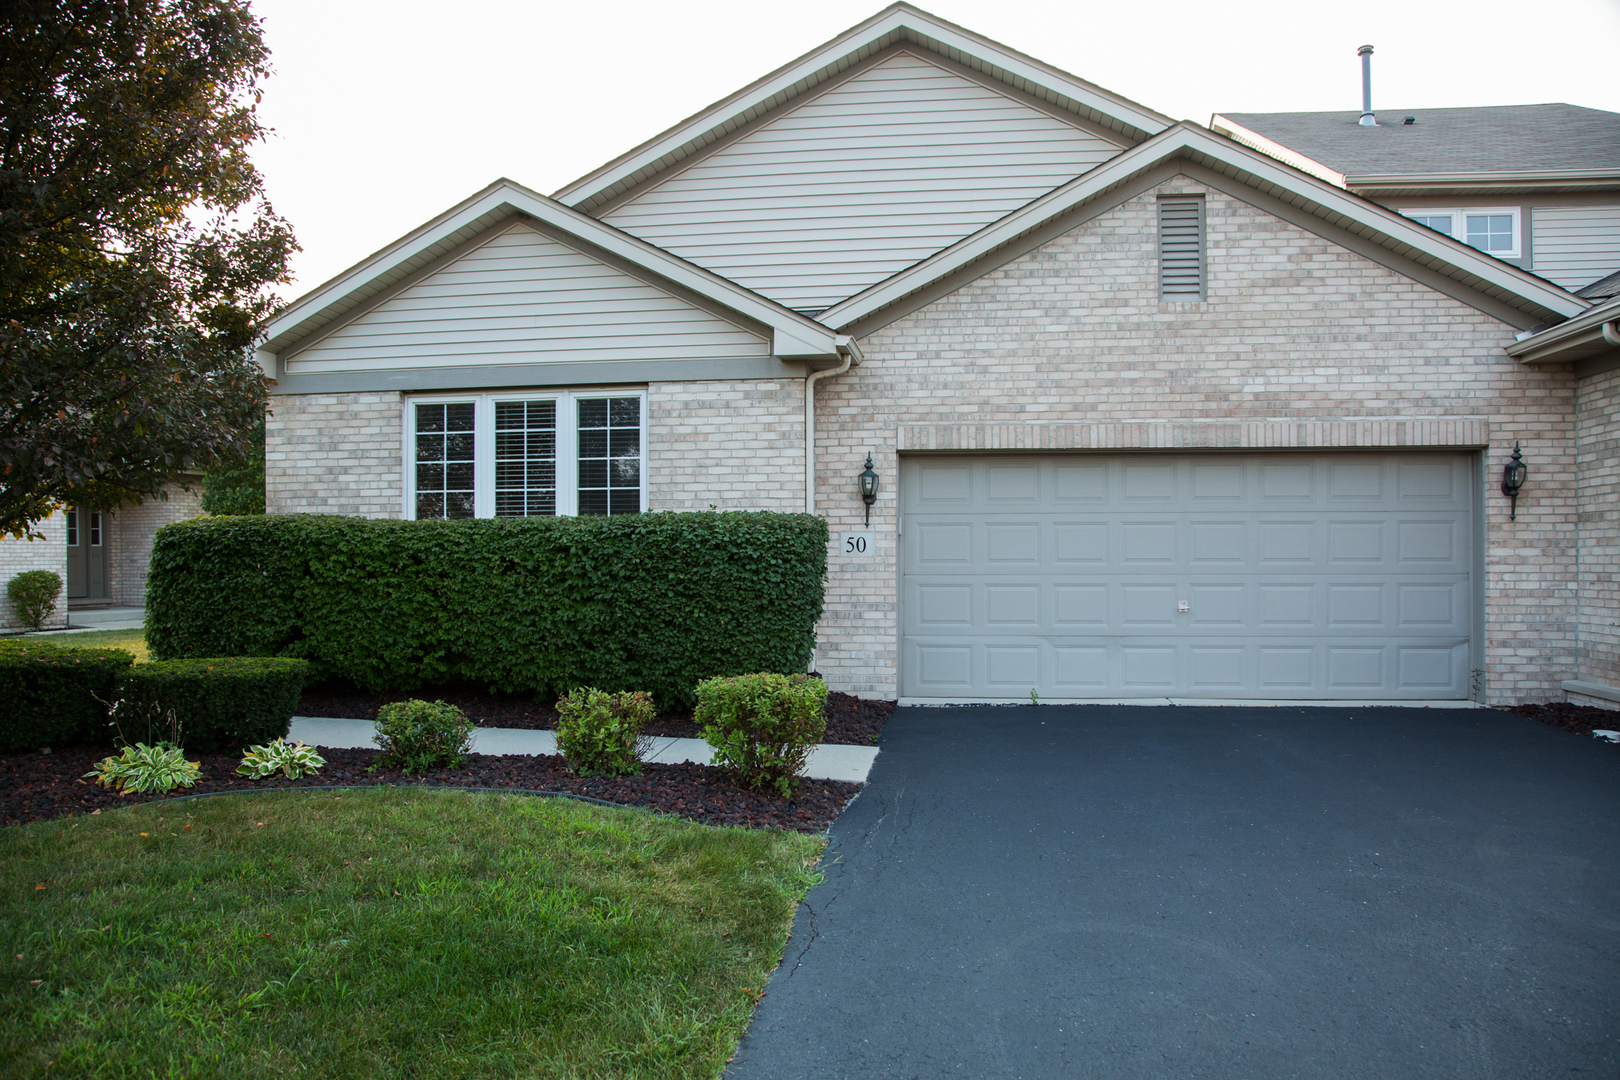 50 ODYSSEY Drive, Tinley Park in Cook County, IL 60477 Home for Sale